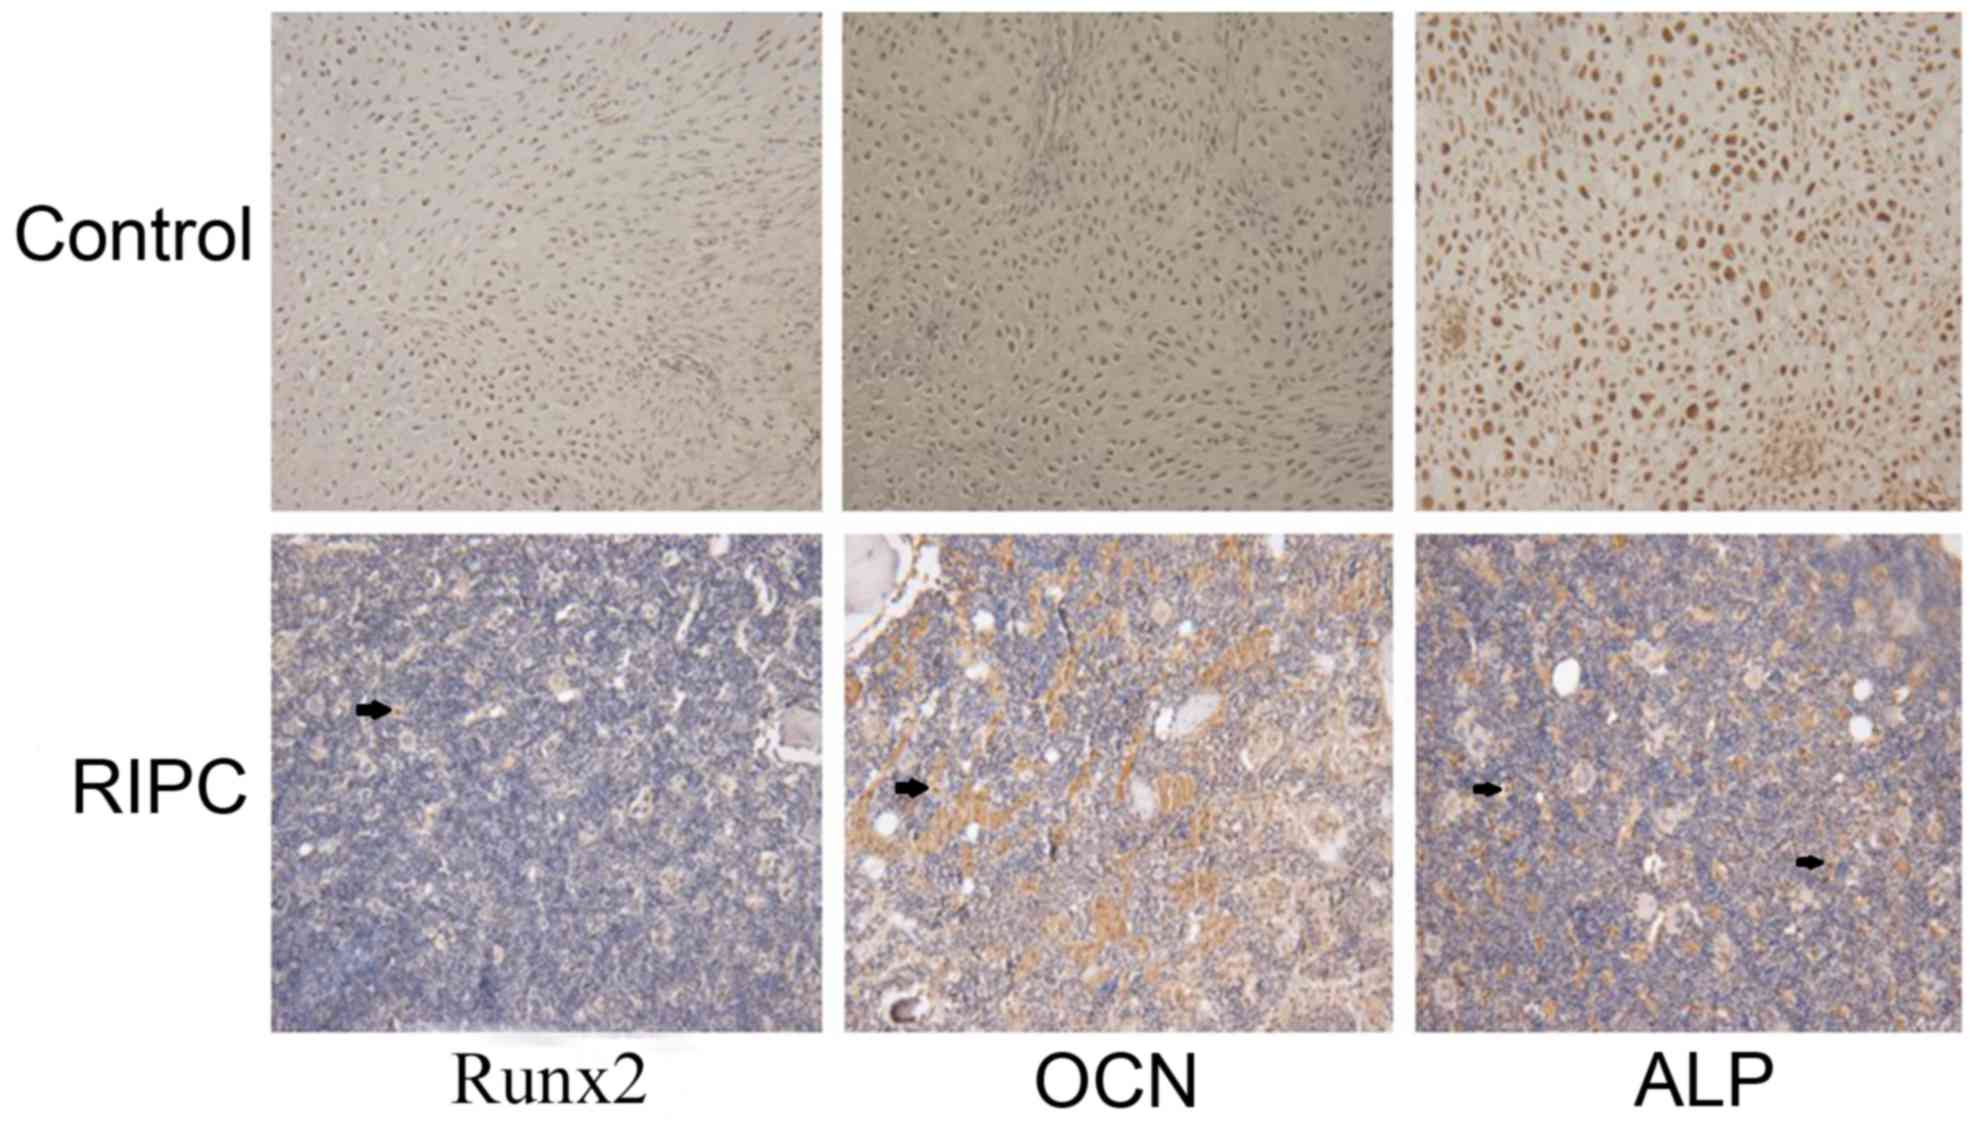 Effects Of Remote Ischemic Postconditioning On Fracture Healing In Rats Wiring Harness 84 Cj7 4 2l Representative Images Immunohistochemical Staining Runx2 Ocn And Alp Bone Tissues 42 Days After Ripc Post Conditioning